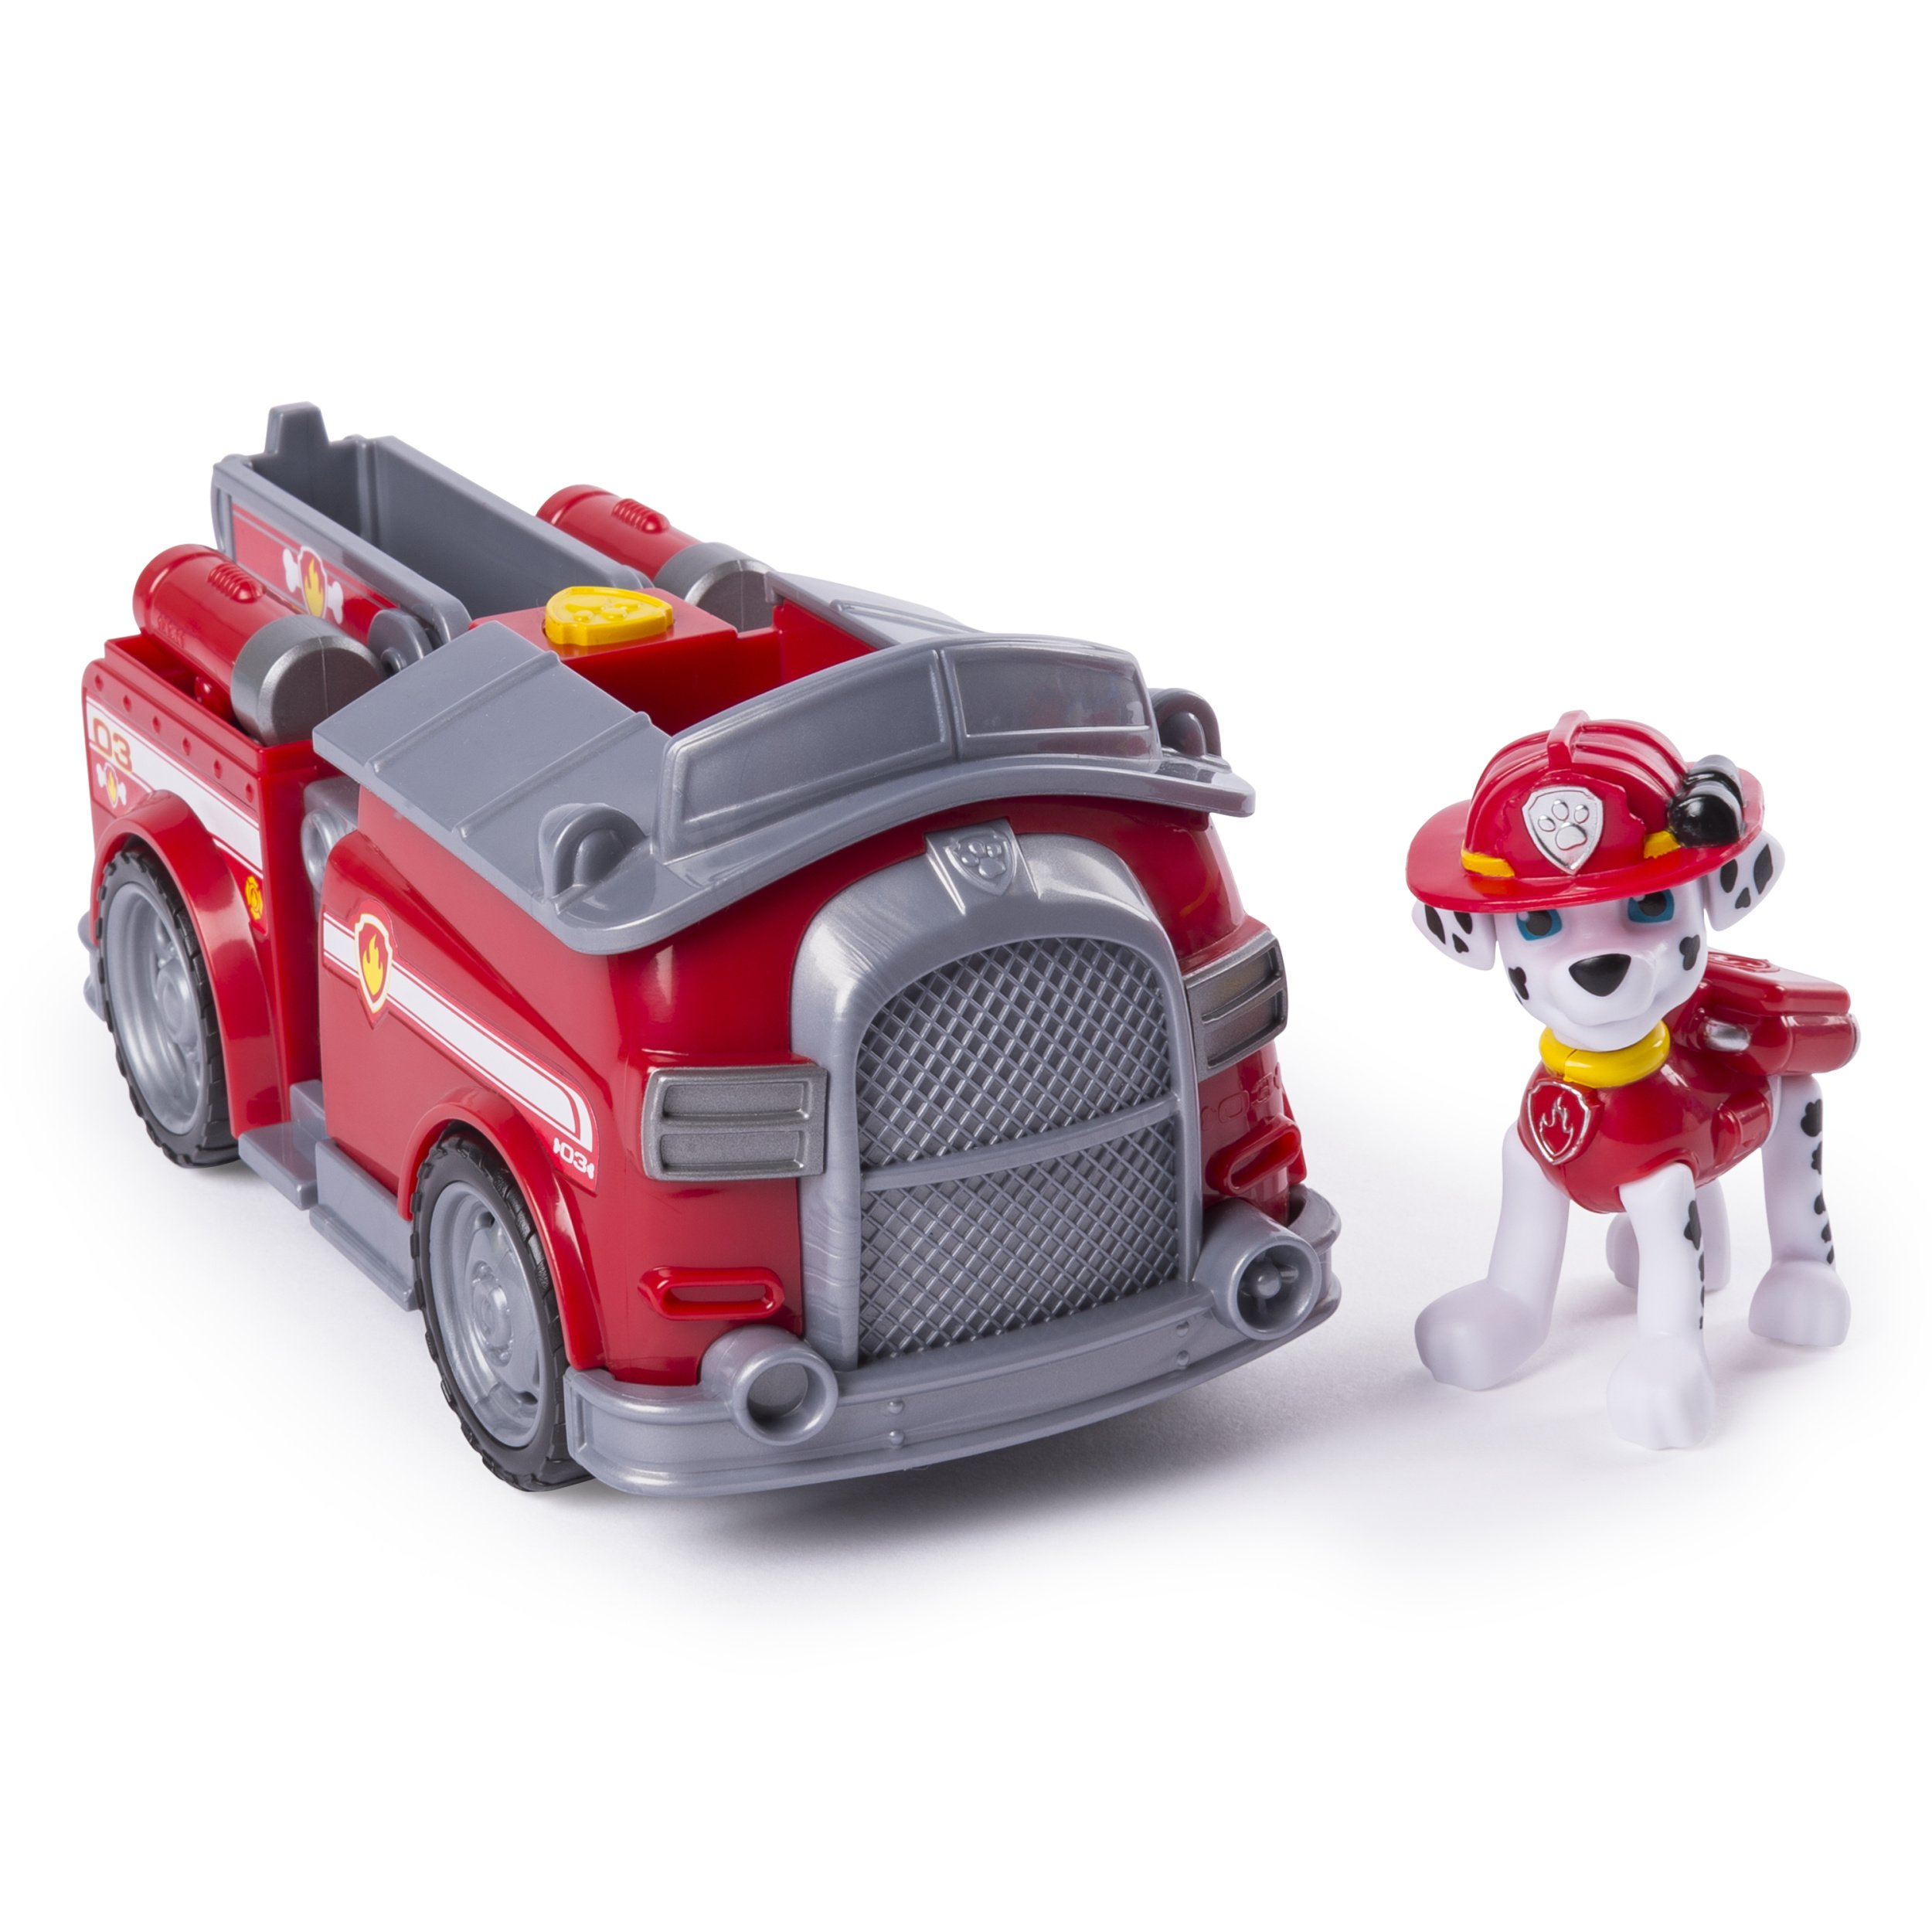 Paw Patrol Marshall's Transforming Fire Truck with Pop-out Water Cannons, for Ages 3 and Up by Paw Patrol